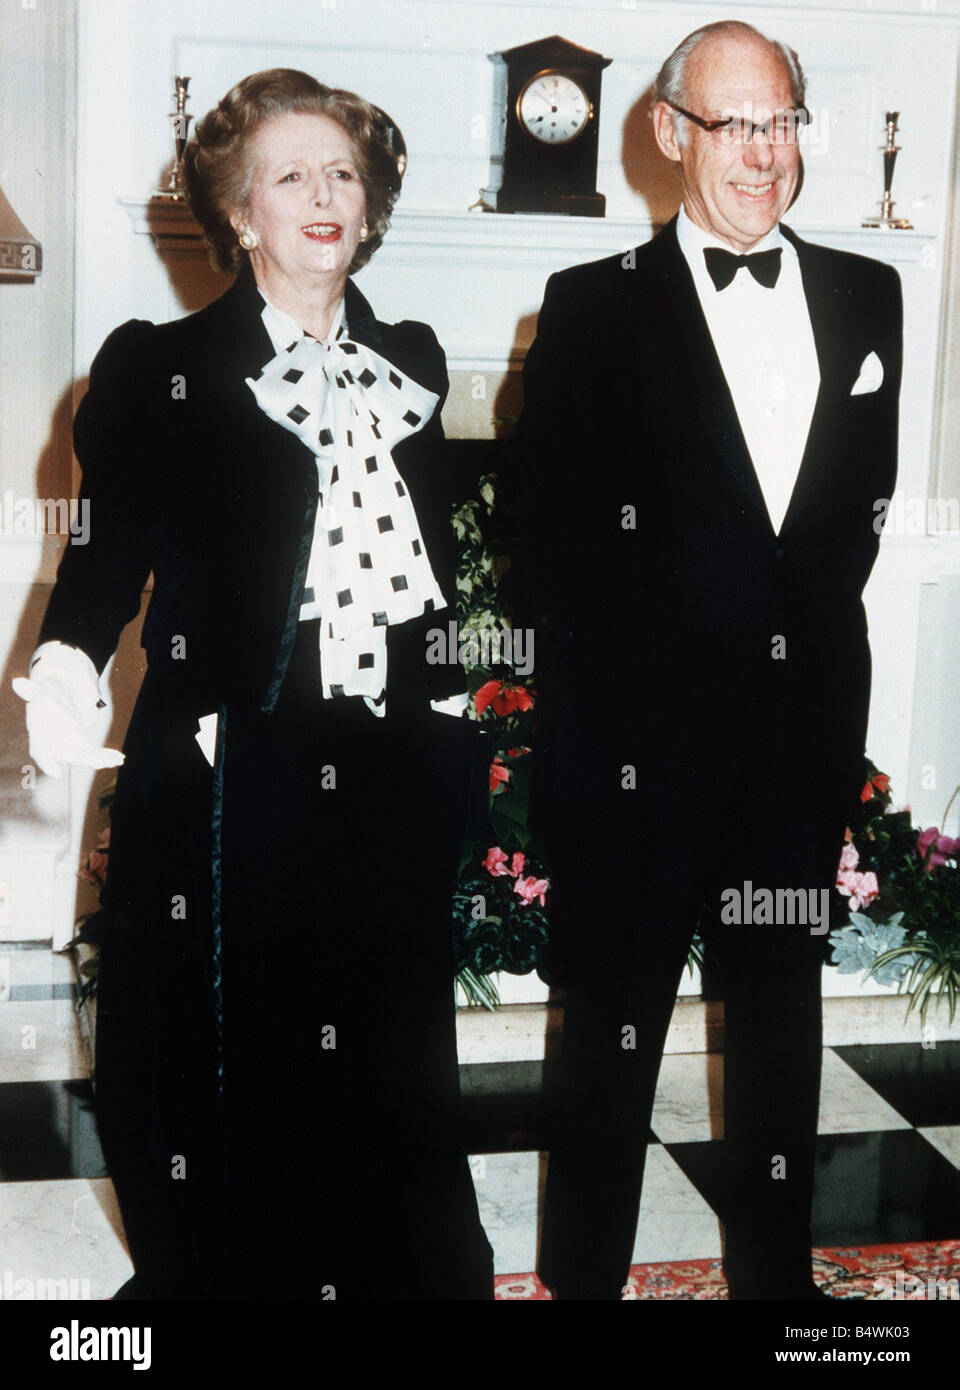 Margeret Thatcher with husband Denis at the 250th anniversary of Number 10 Downing Street MSI - Stock Image